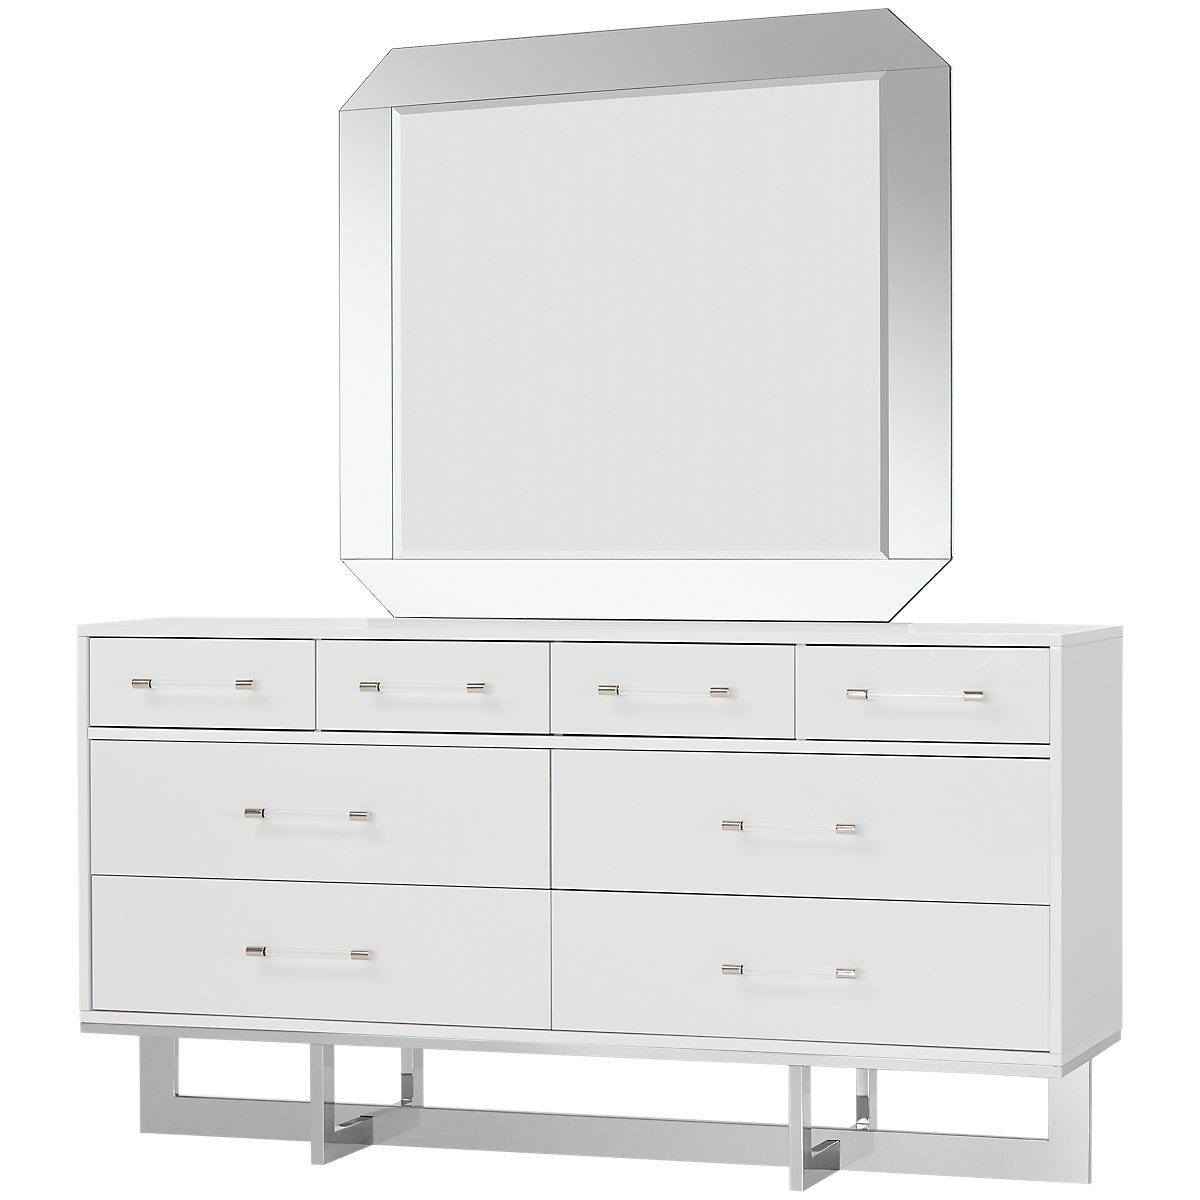 sharp groovy white bedroom inspiration furniture | Cortina White Dresser: Bedroom Furniture